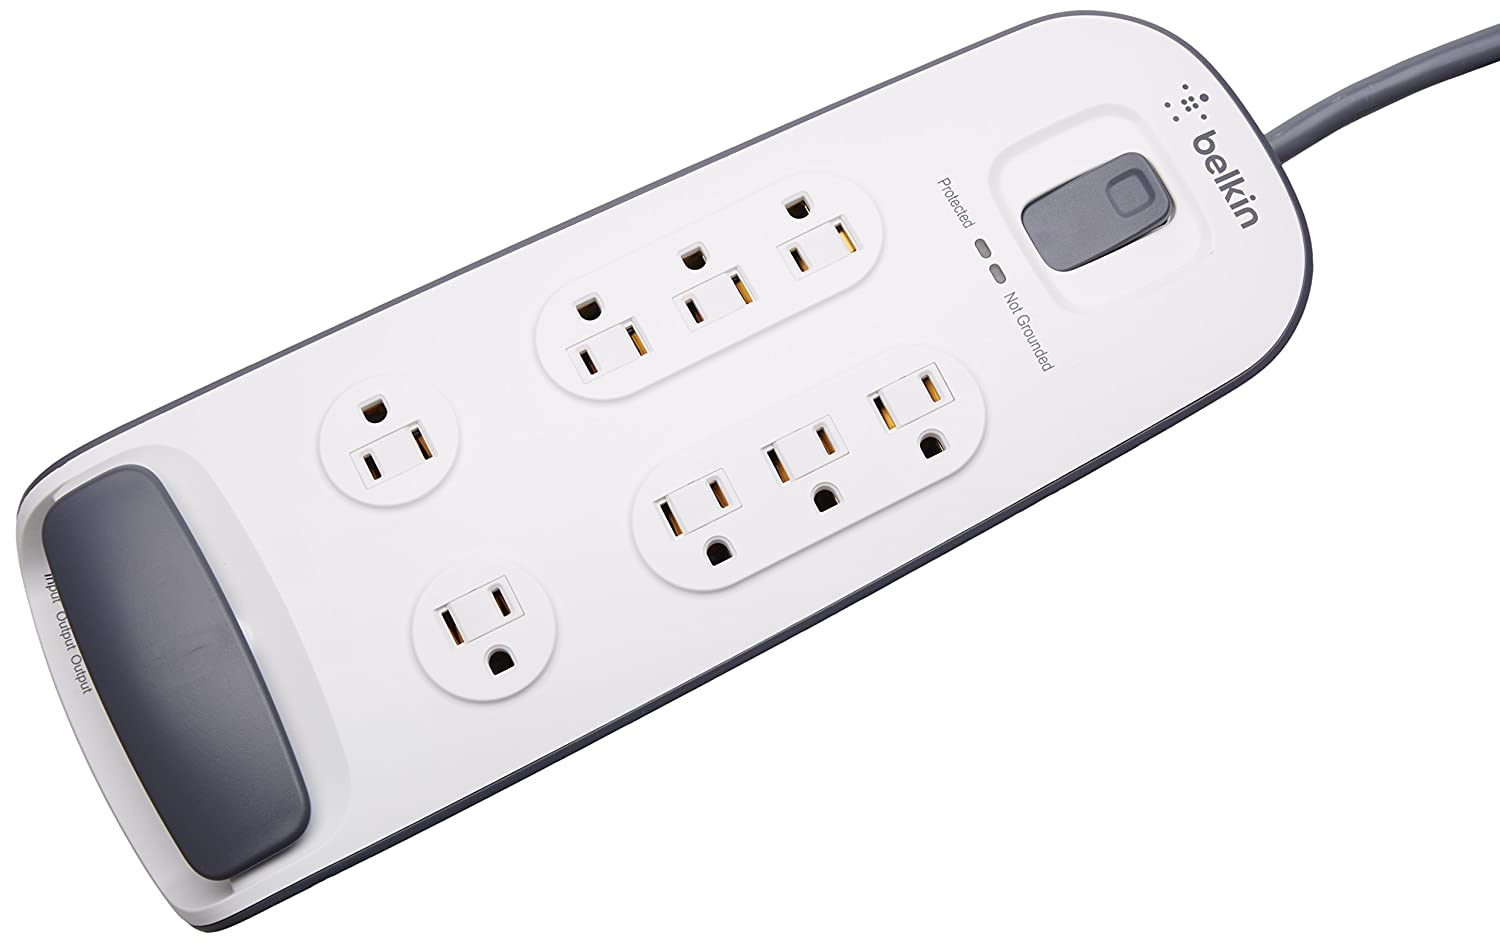 Belkin 8-Outlet Surge Protector with 6-Foot Cord (BV108200-06)